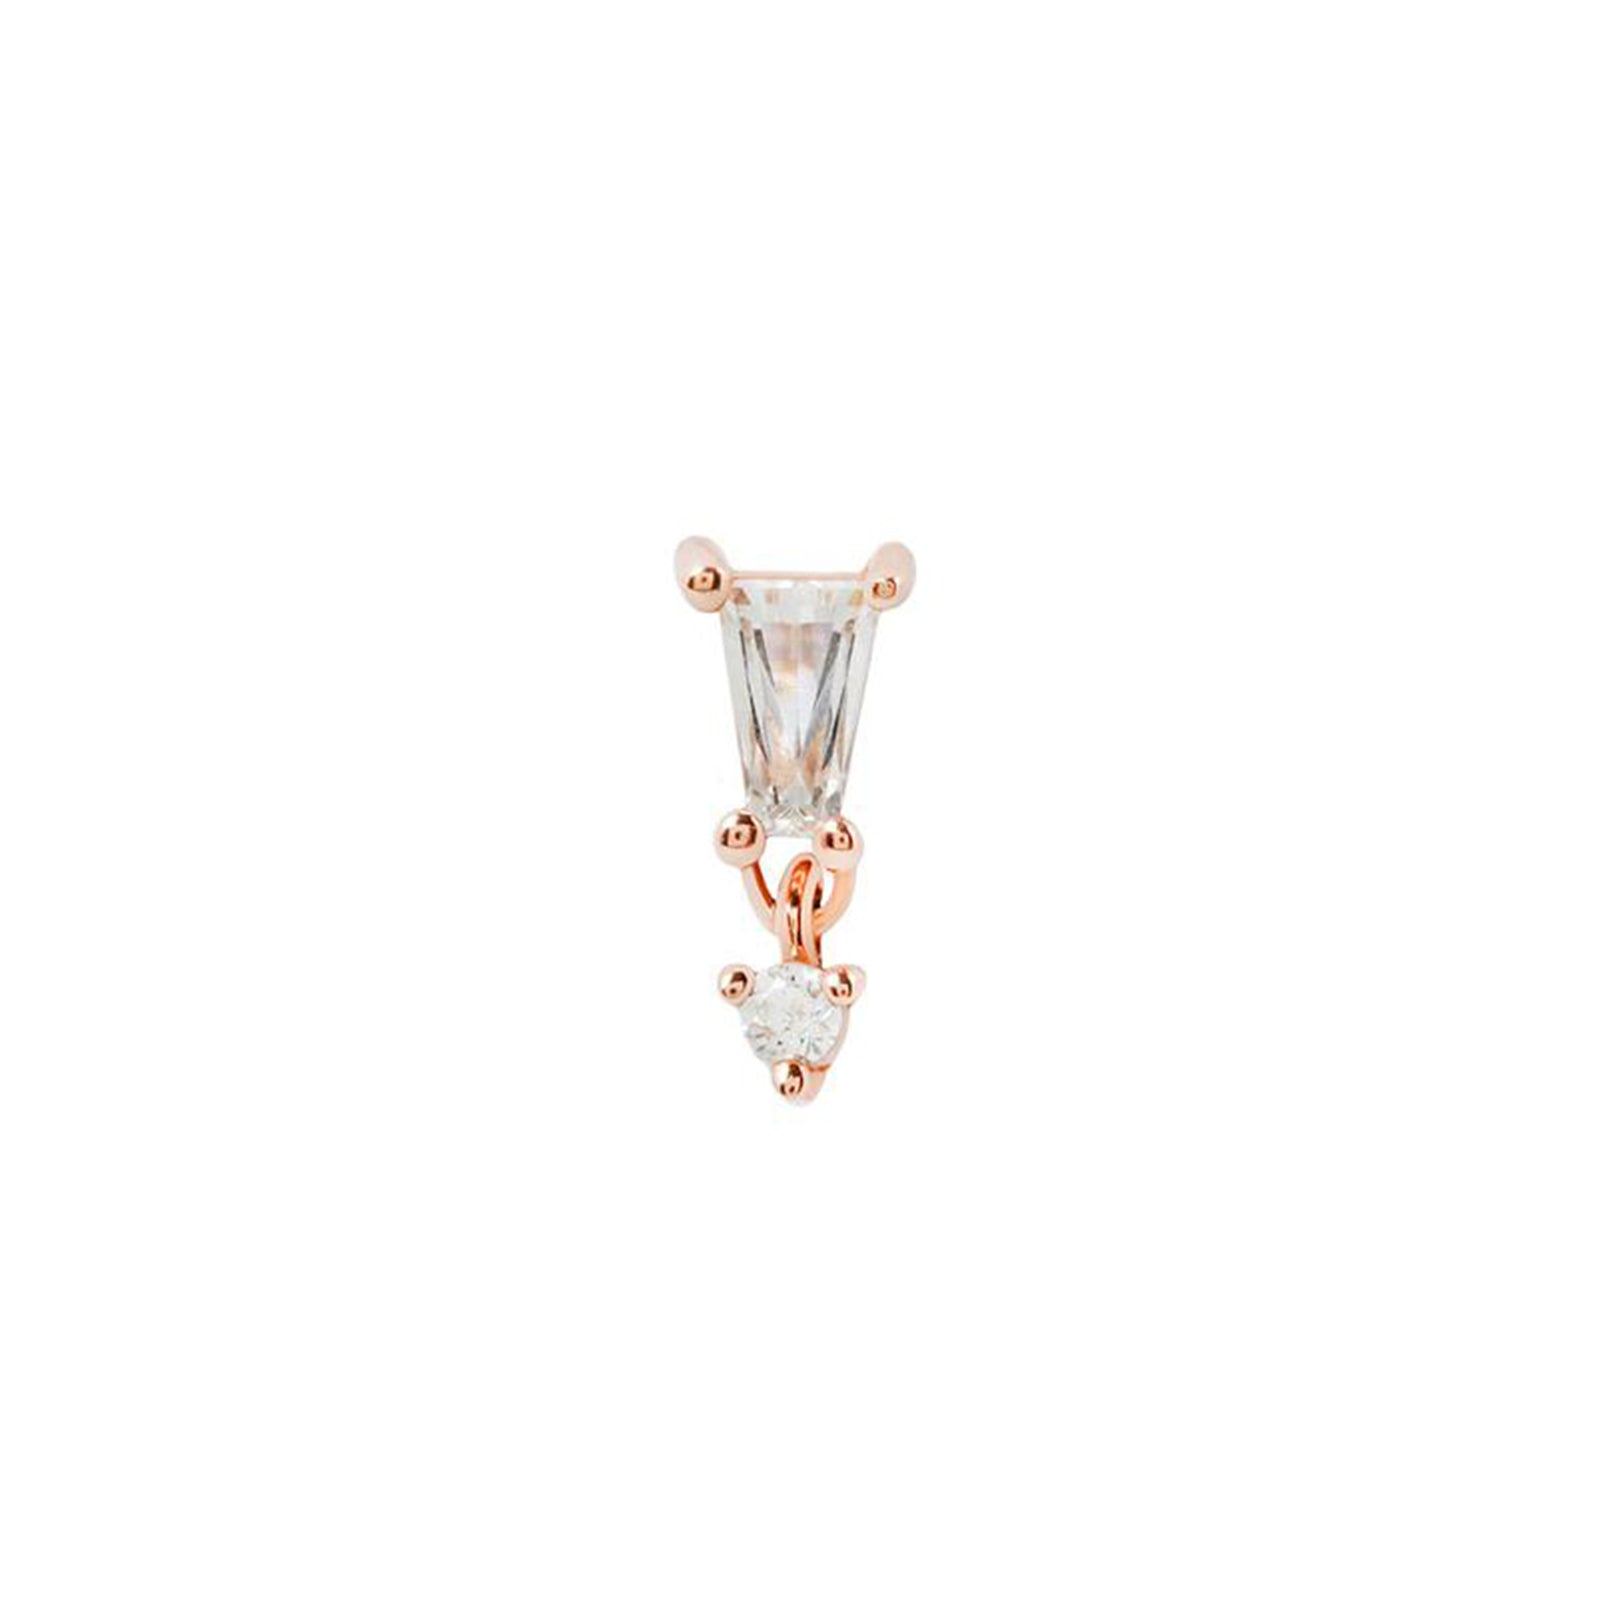 Yves Dangle in 14k Rose Gold by Buddha Jewelry